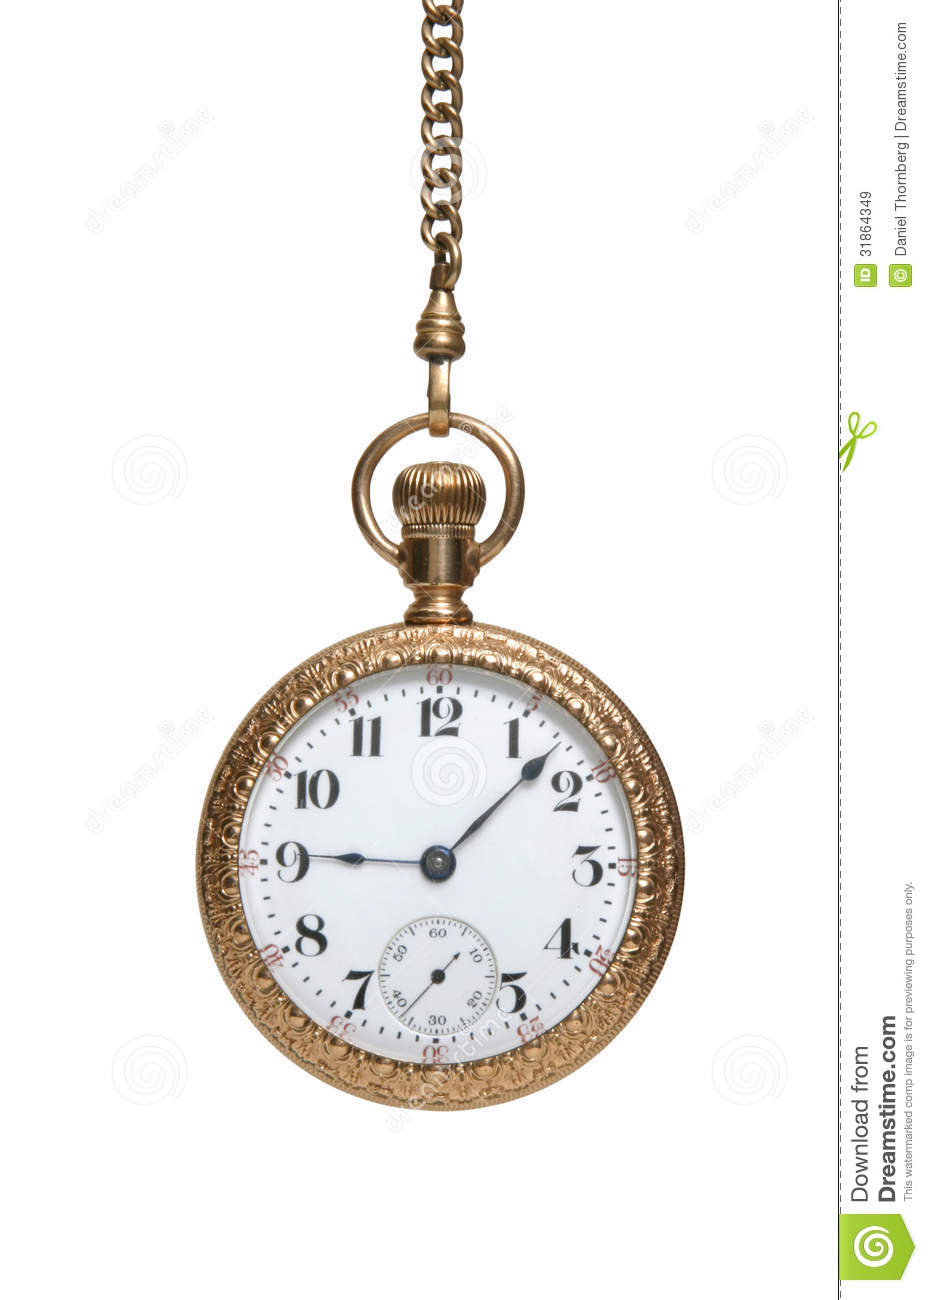 Antique Watch And Chain Isolated On White Royalty Free ...